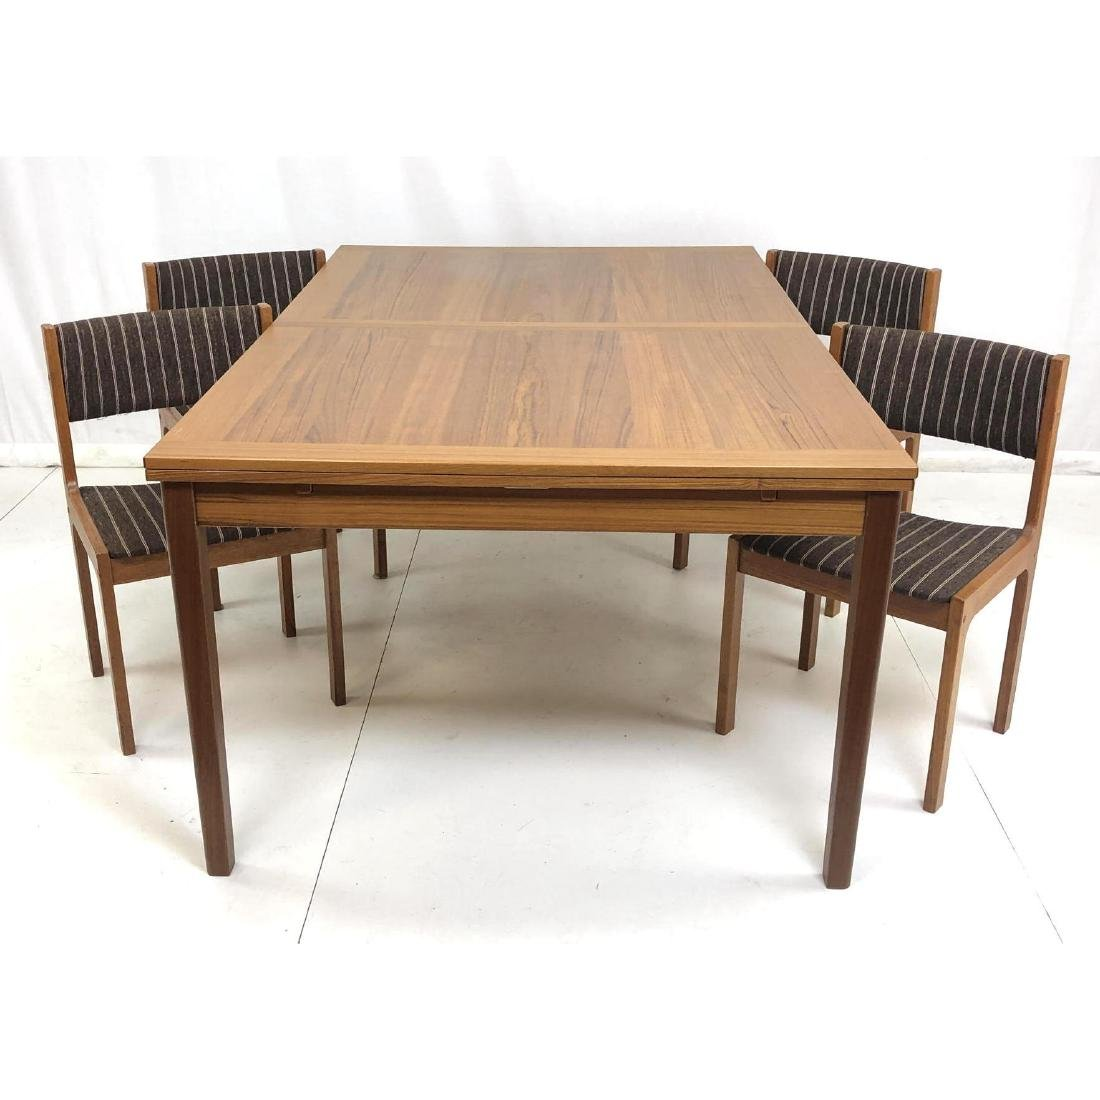 5pc Danish Modern Teak Refractory Dining Set. Tab